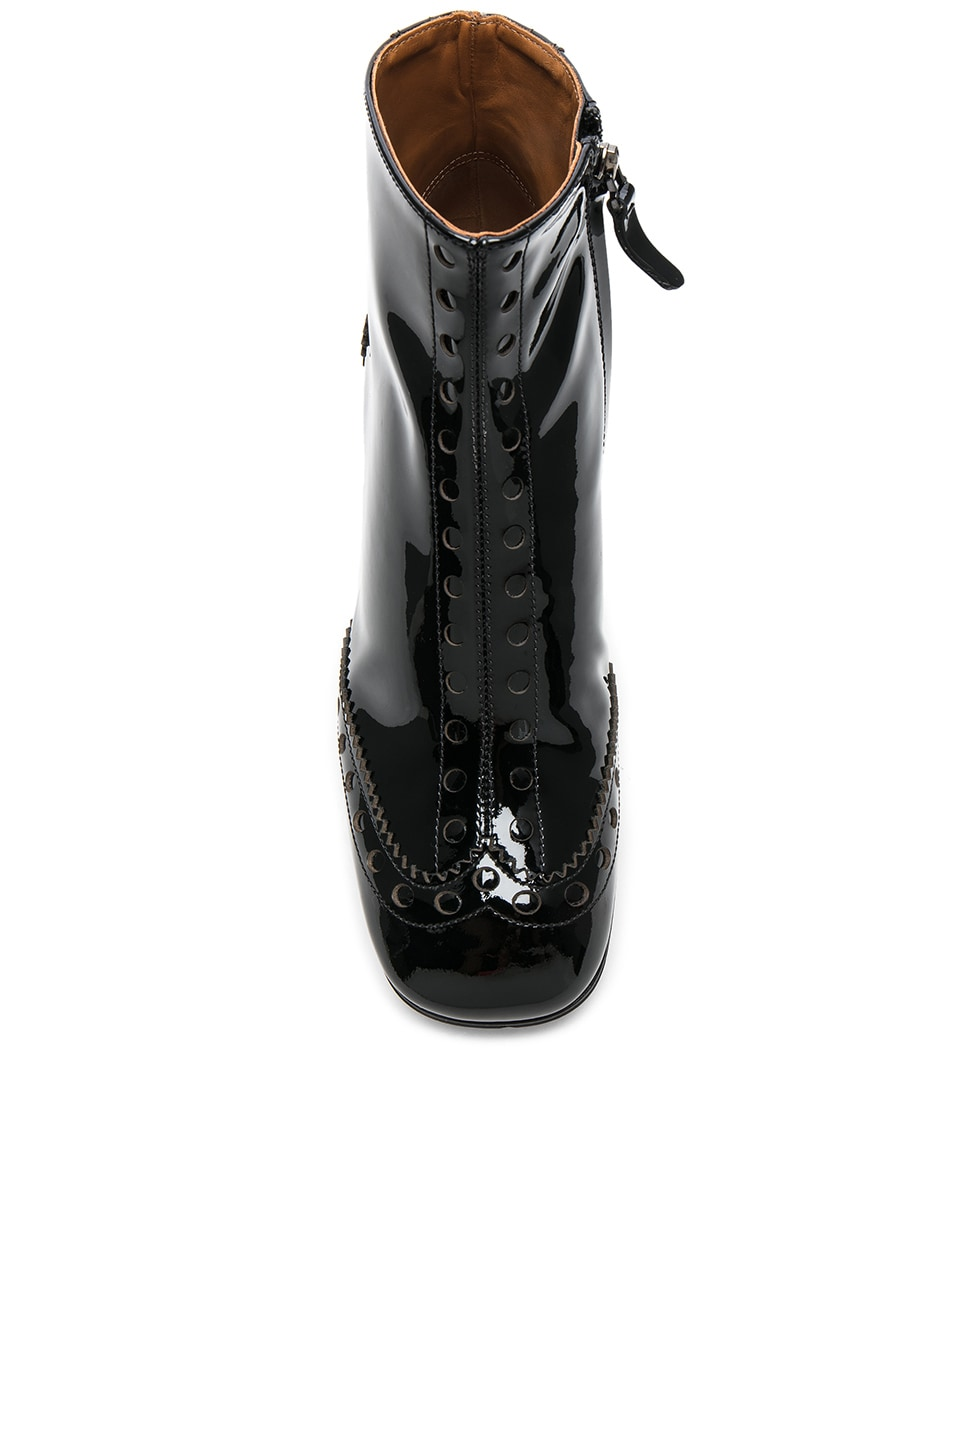 5853dc202fdd Image 4 of Chloe Perry Patent Leather Ankle Boots in Black